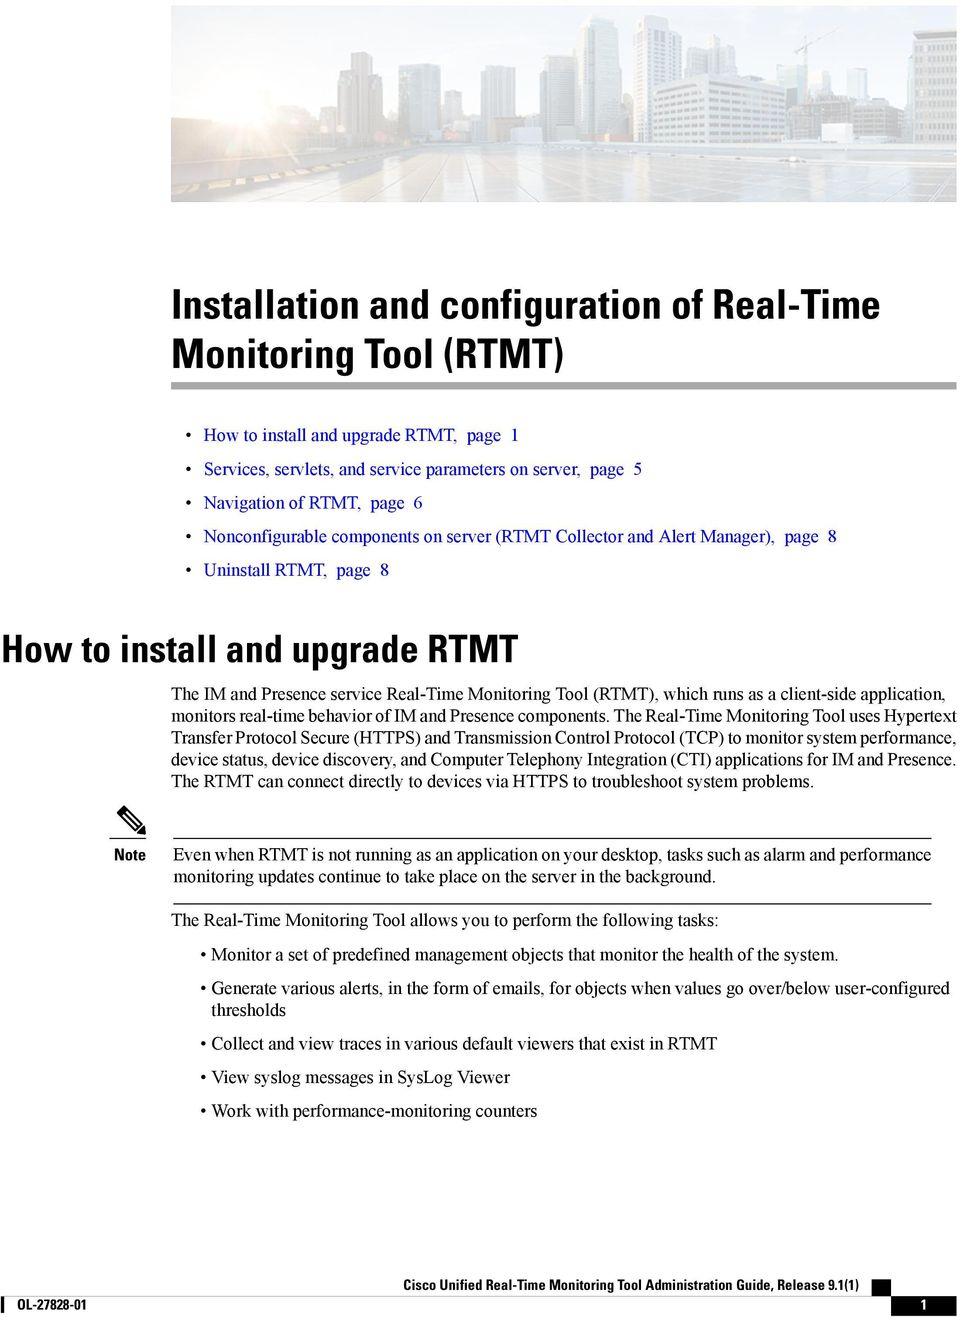 Installation and configuration of Real-Time Monitoring Tool